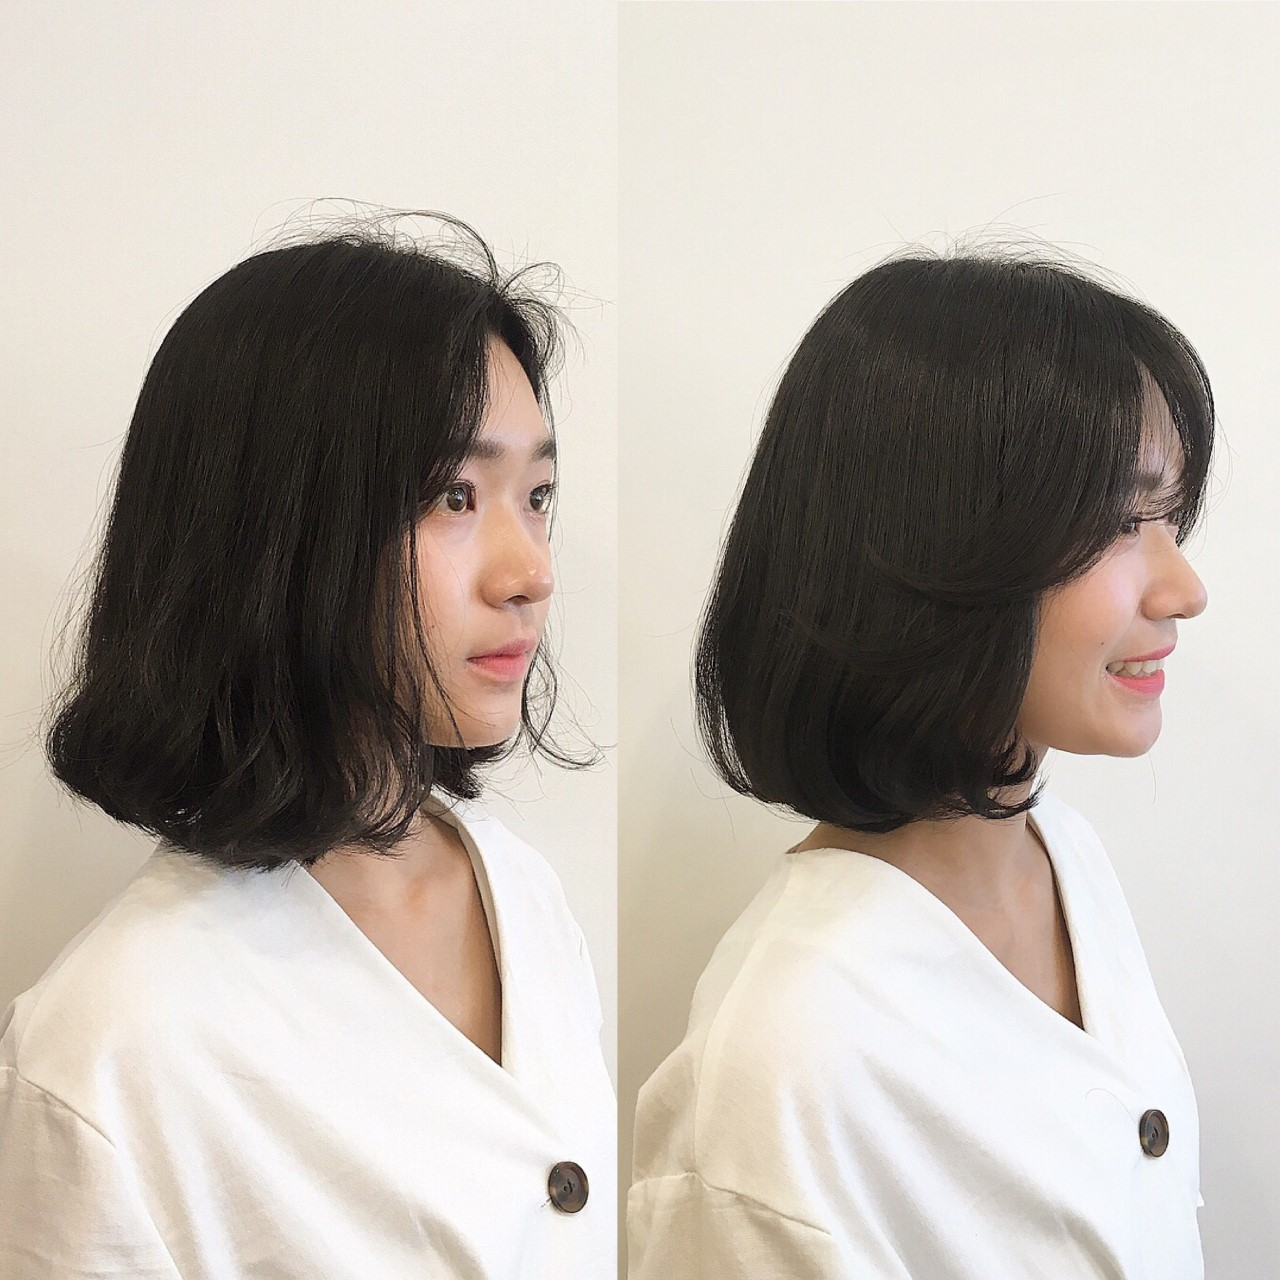 49 Hair Trends You Can Actually Wear to Work in Singapore